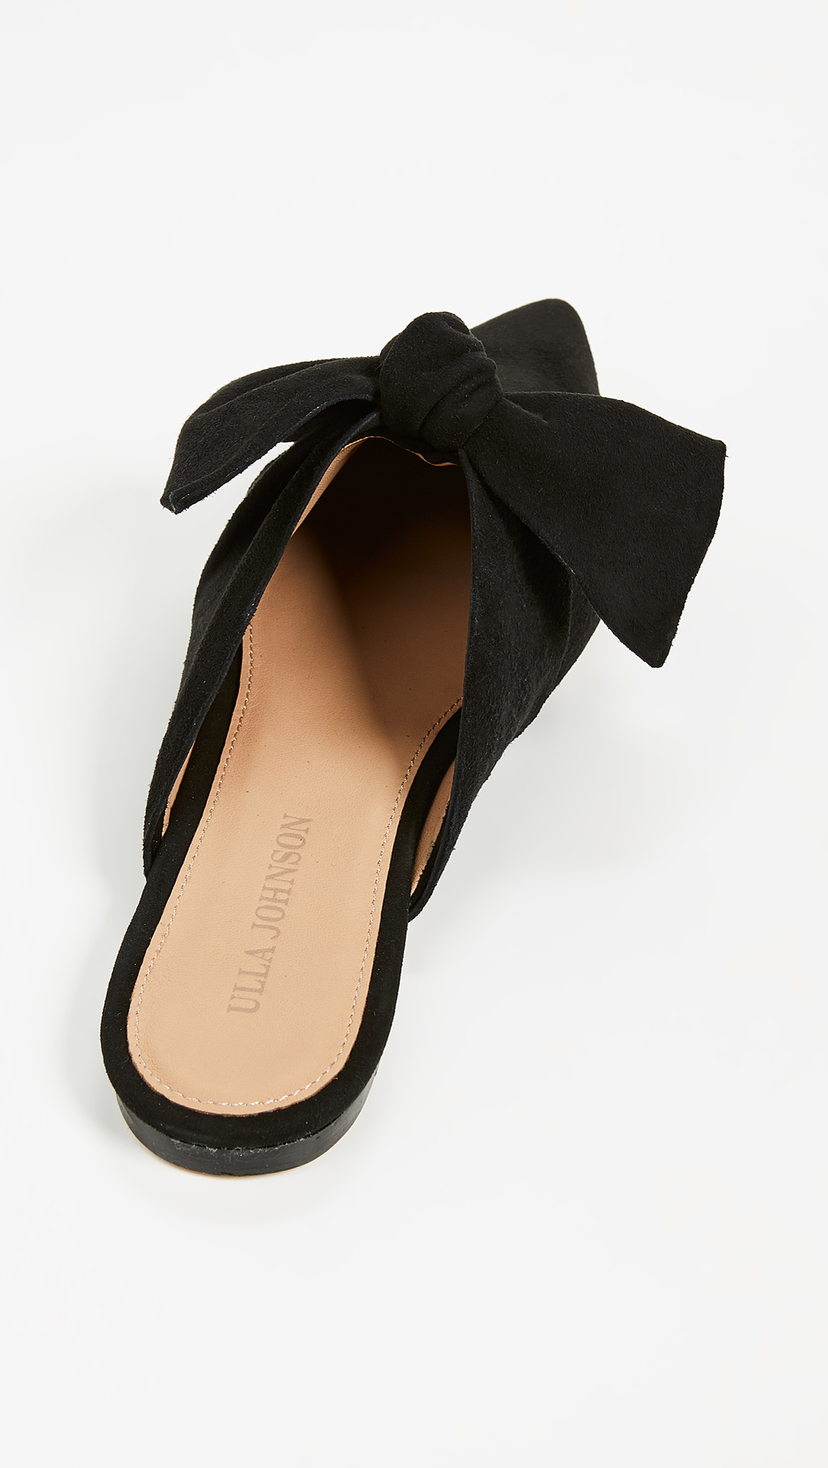 Ulla Johnson Perry Slides Shoes